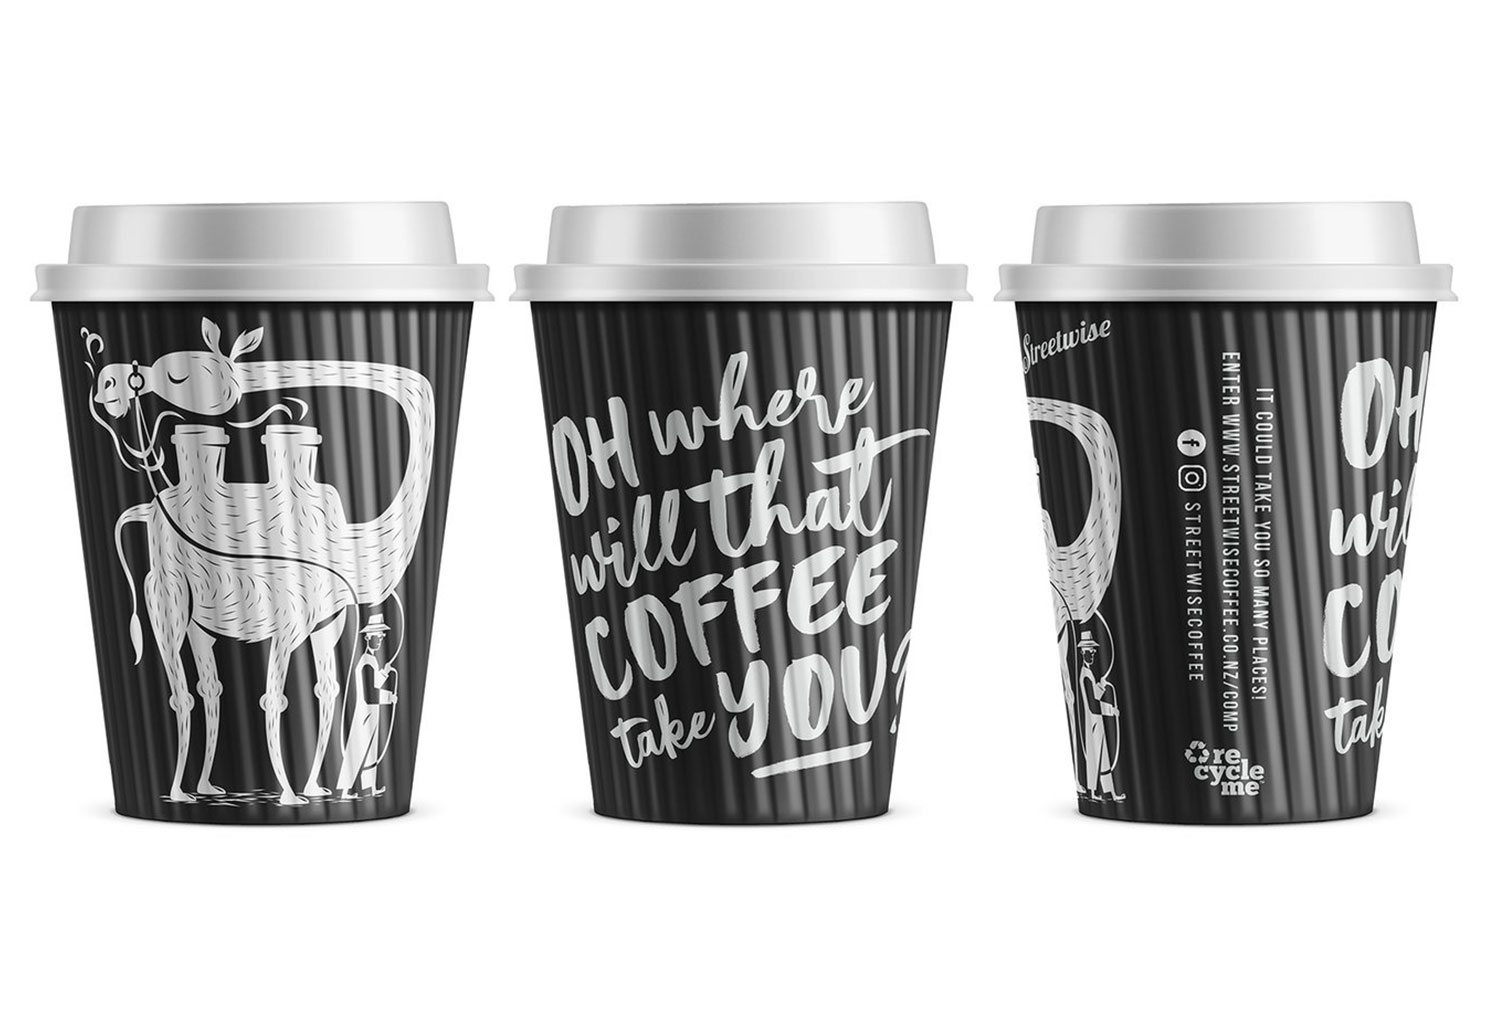 Image of RecycleMe Streetwise Coffee Cups